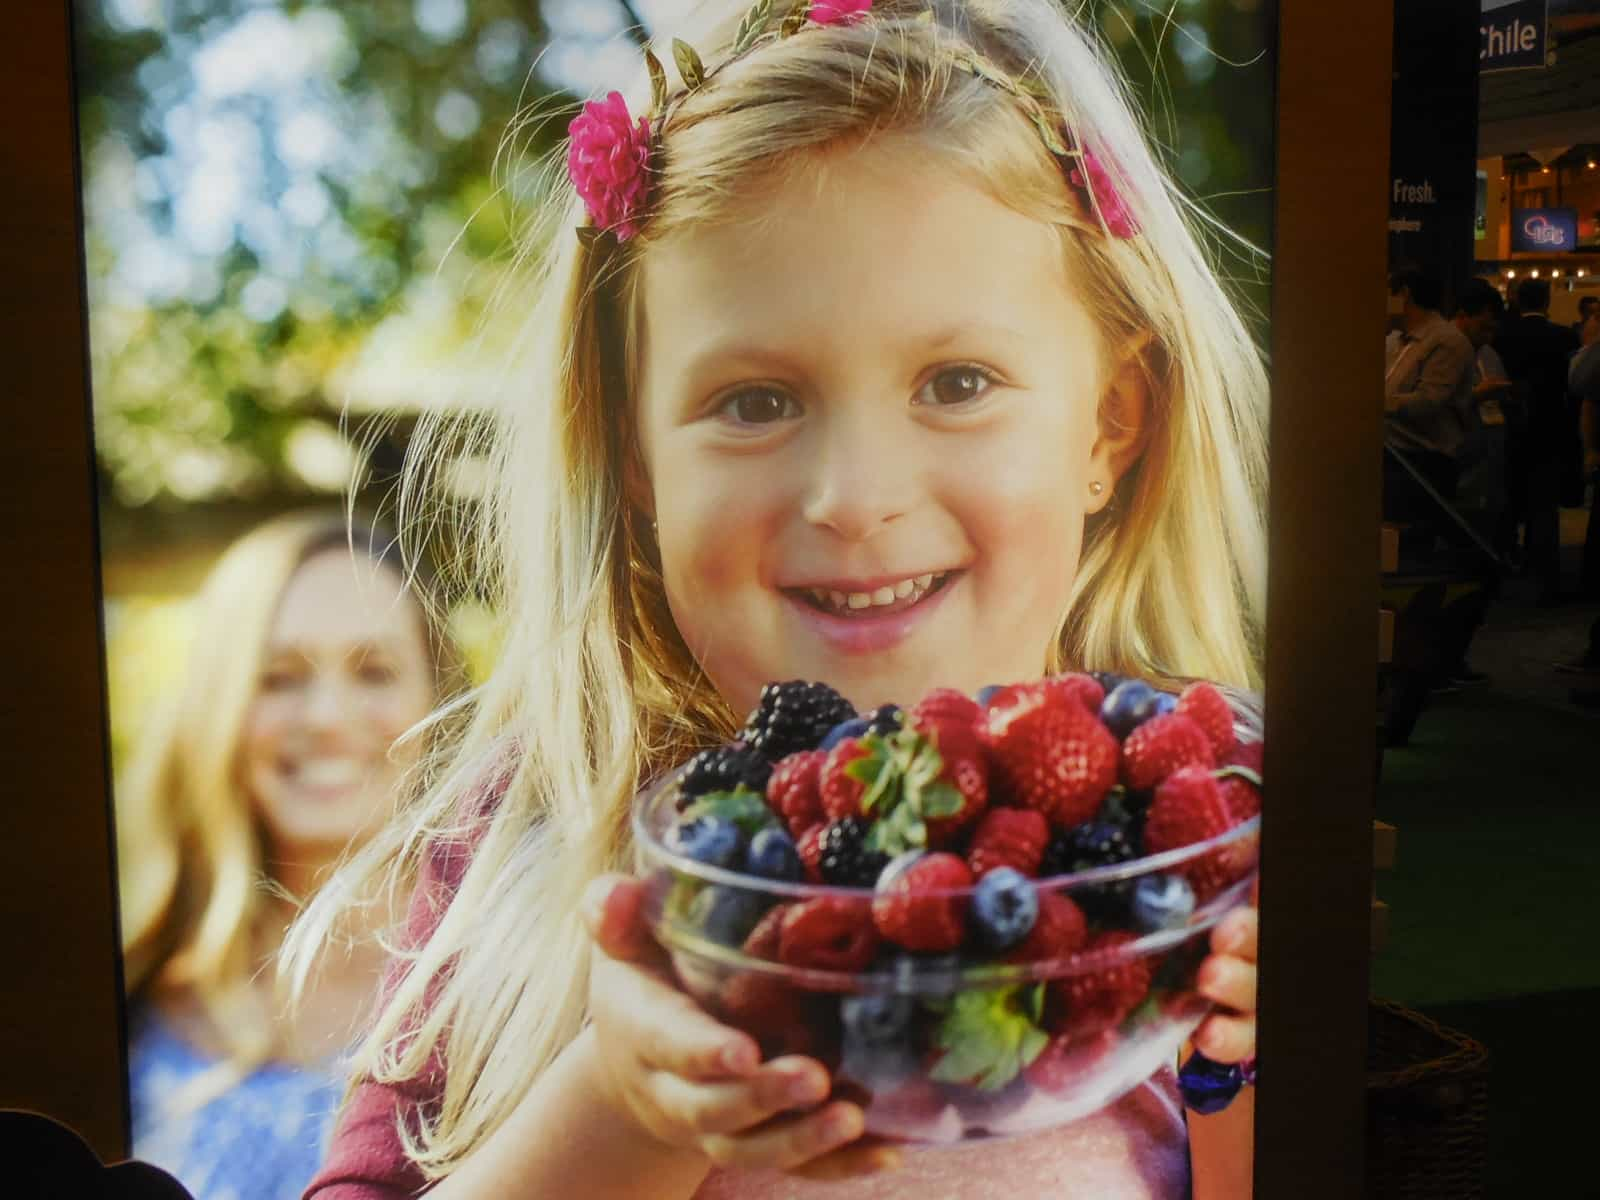 Fresh Fruit Has Per Capita Growth; Study Shows Berries Salads Lead Organic Produce Consumption